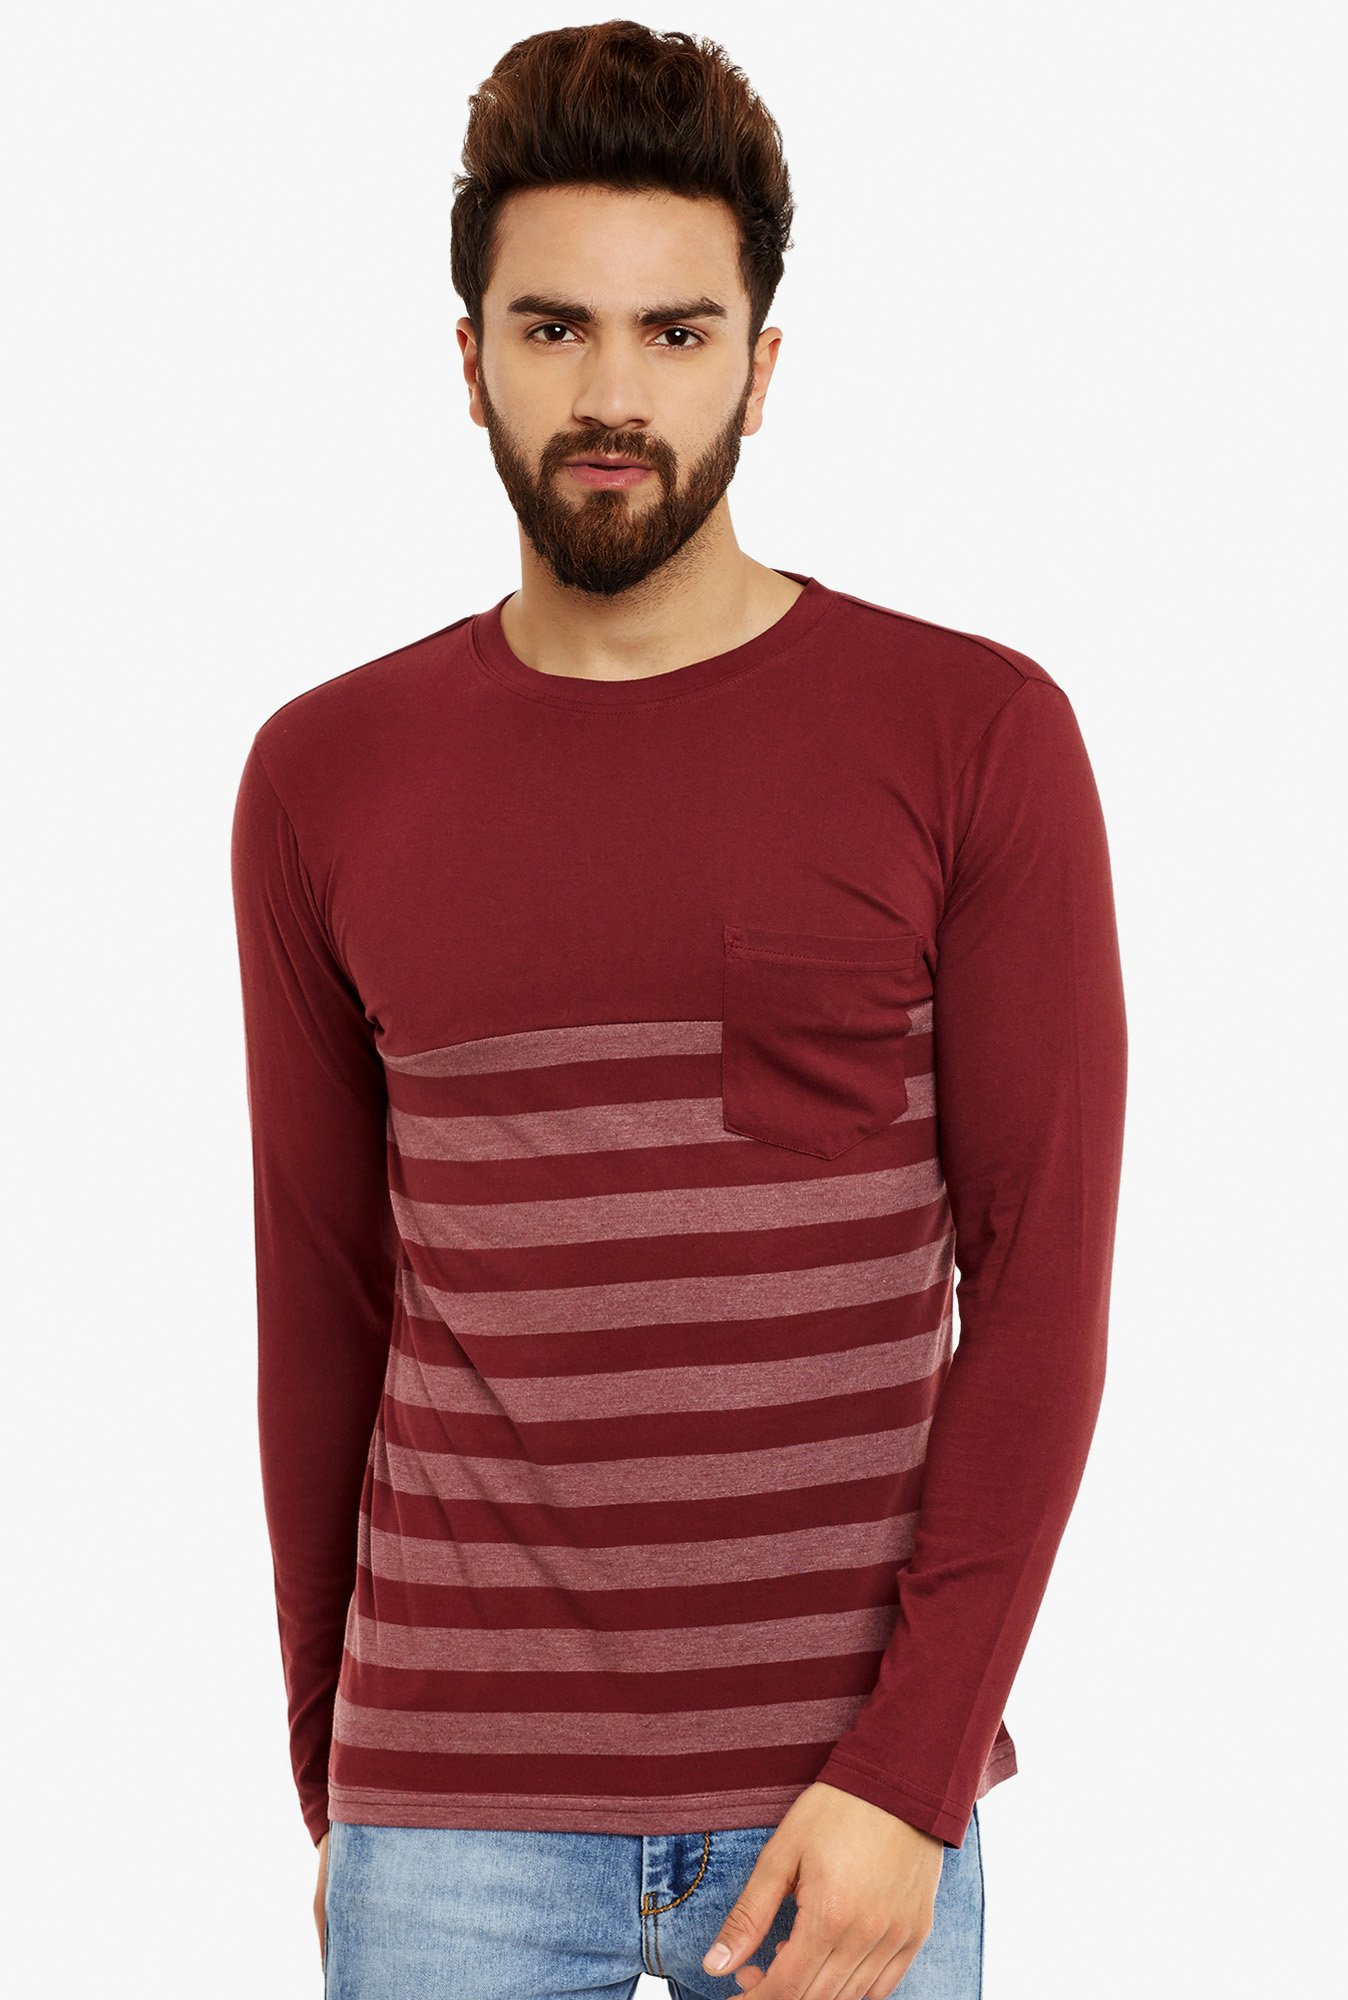 Hypernation Maroon Full Sleeves T-Shirt